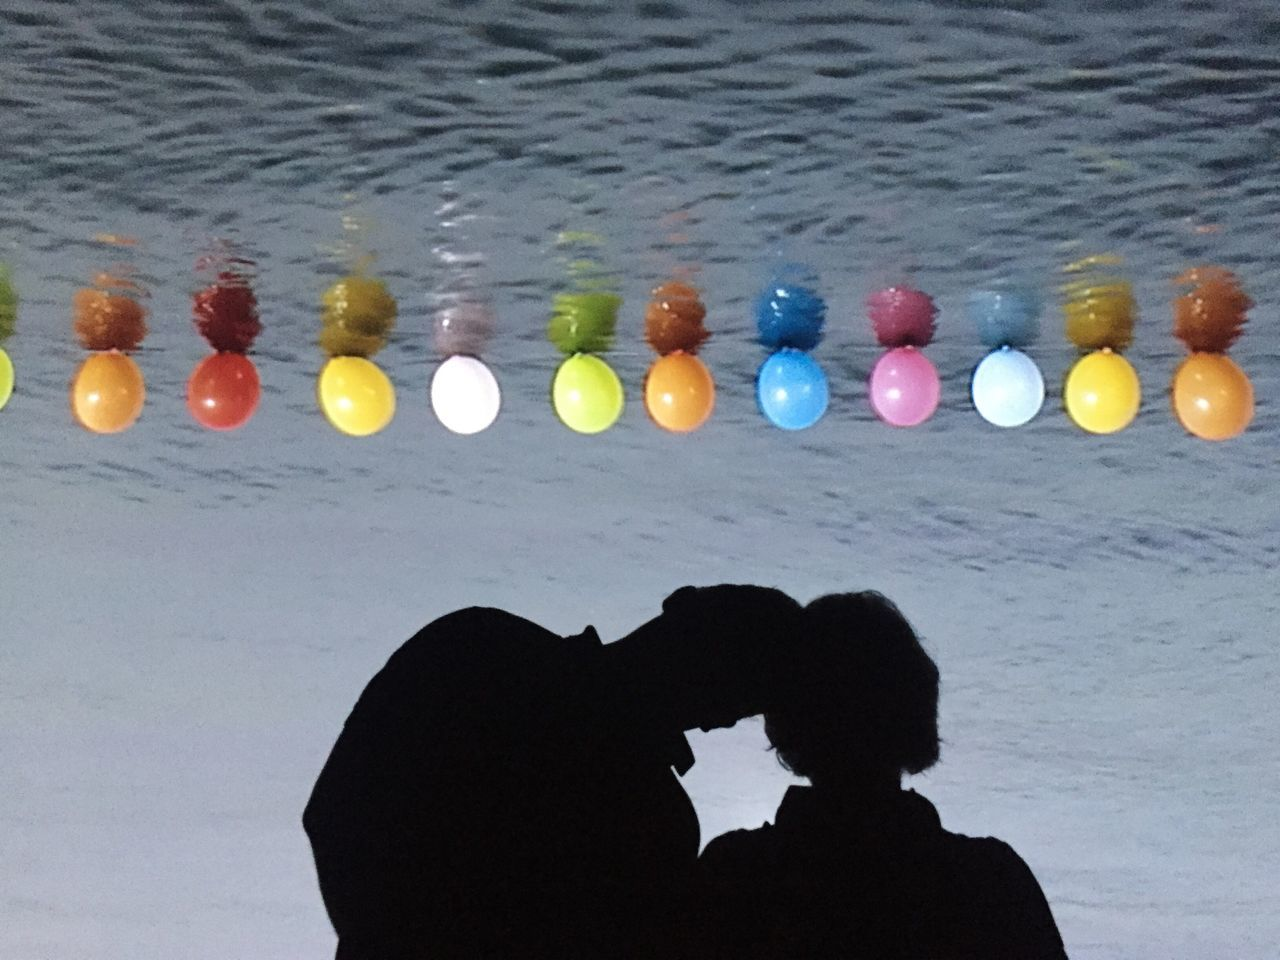 Together Water Leisure Activity Real People Silhouette Multi Colored Day Beach Outdoors One Person People Silhouette Reflection Venice Couple Sea Ocean